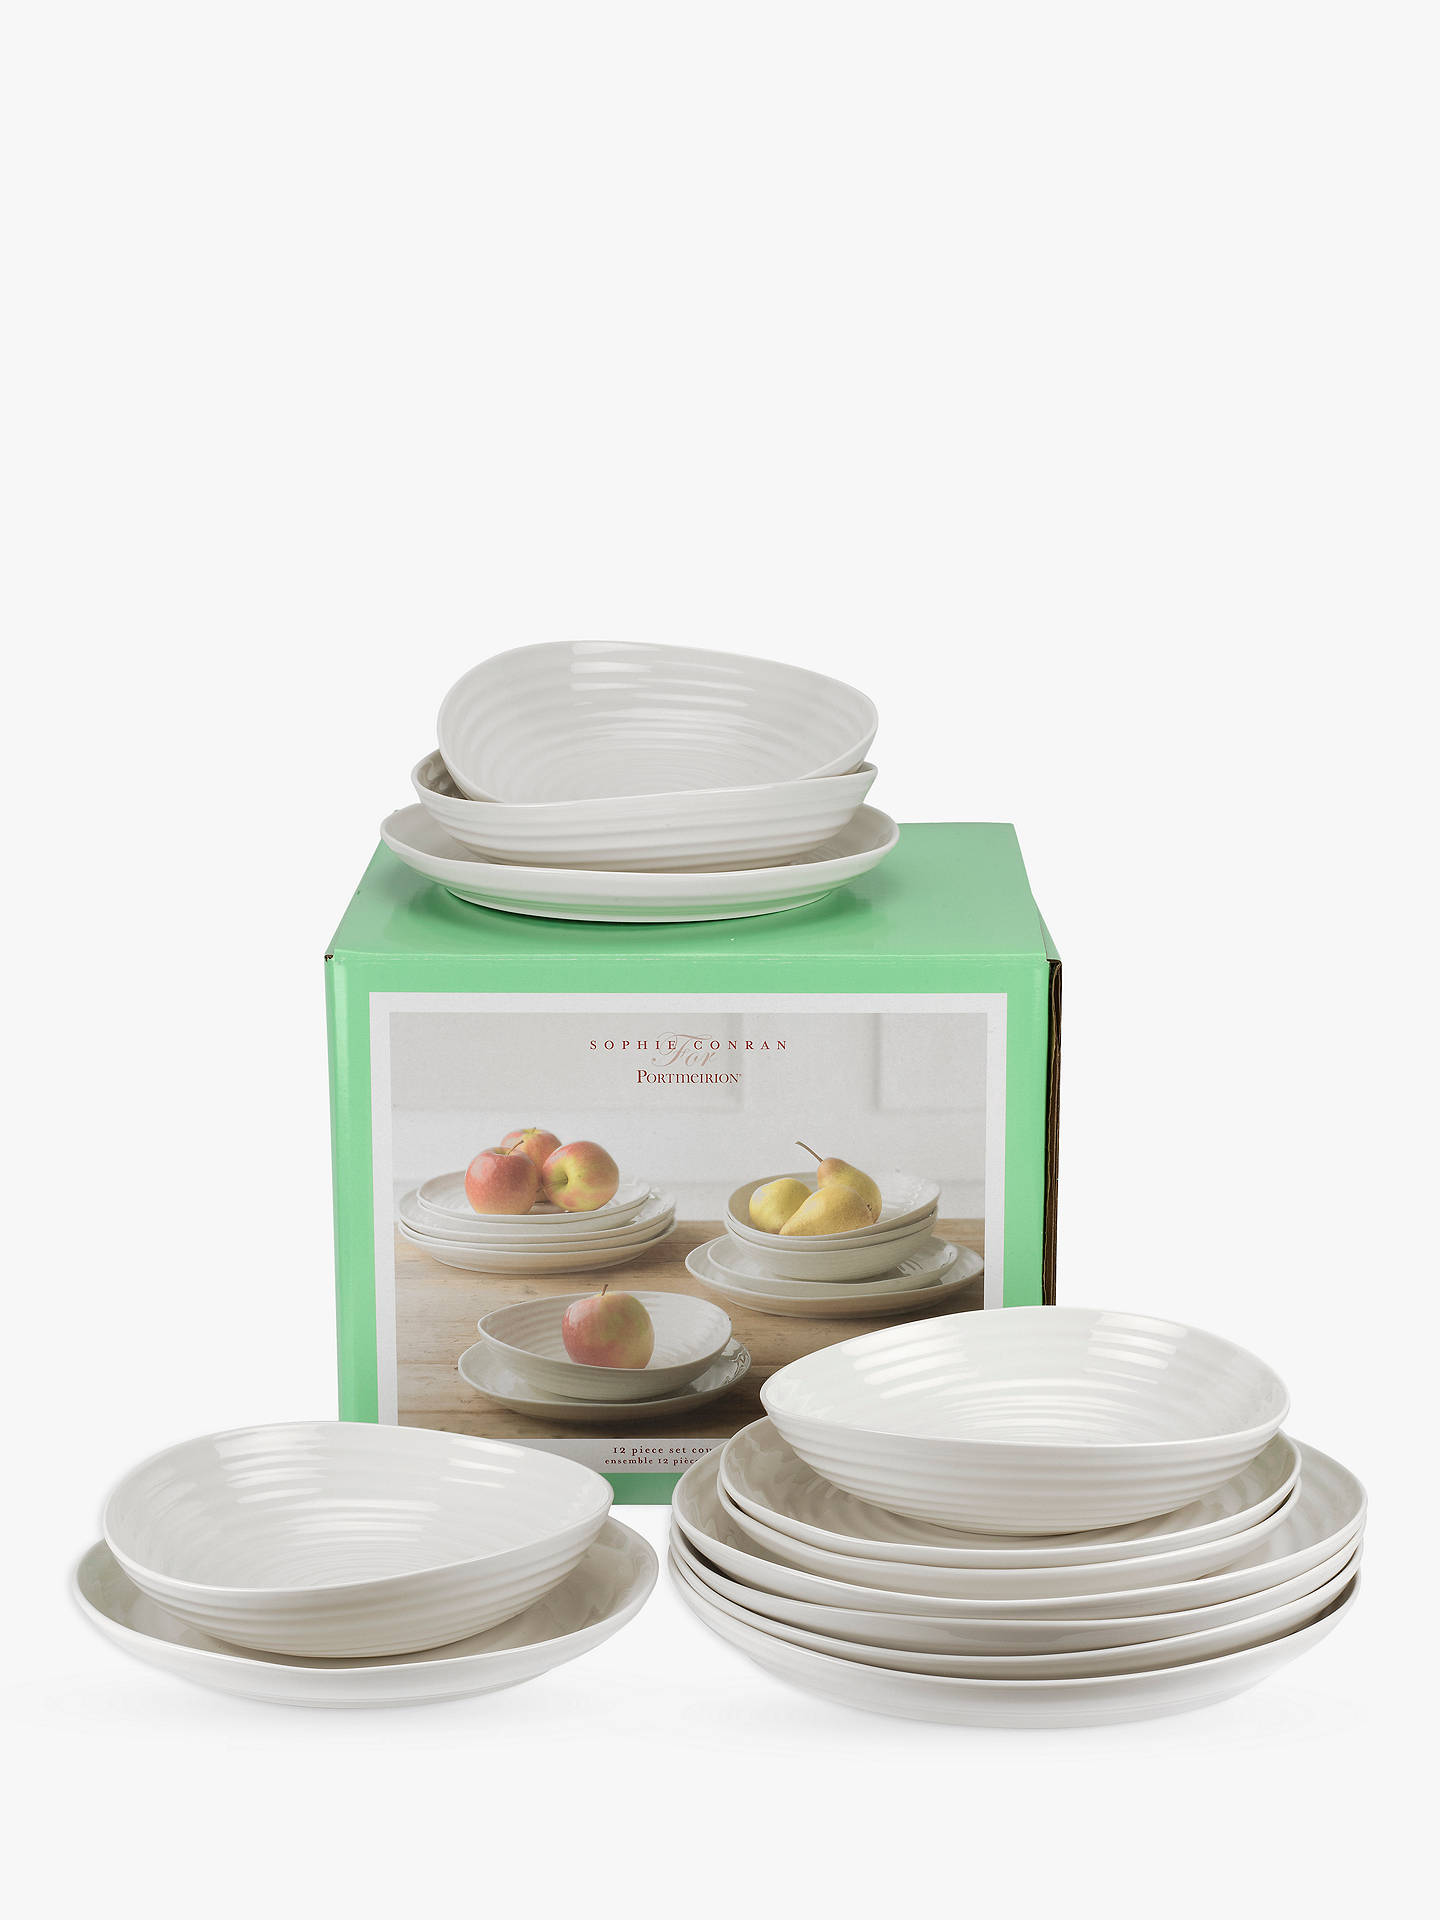 Buy Sophie Conran for Portmeirion Coupe Dinnerware Set, White, 12 Pieces Online at johnlewis.com